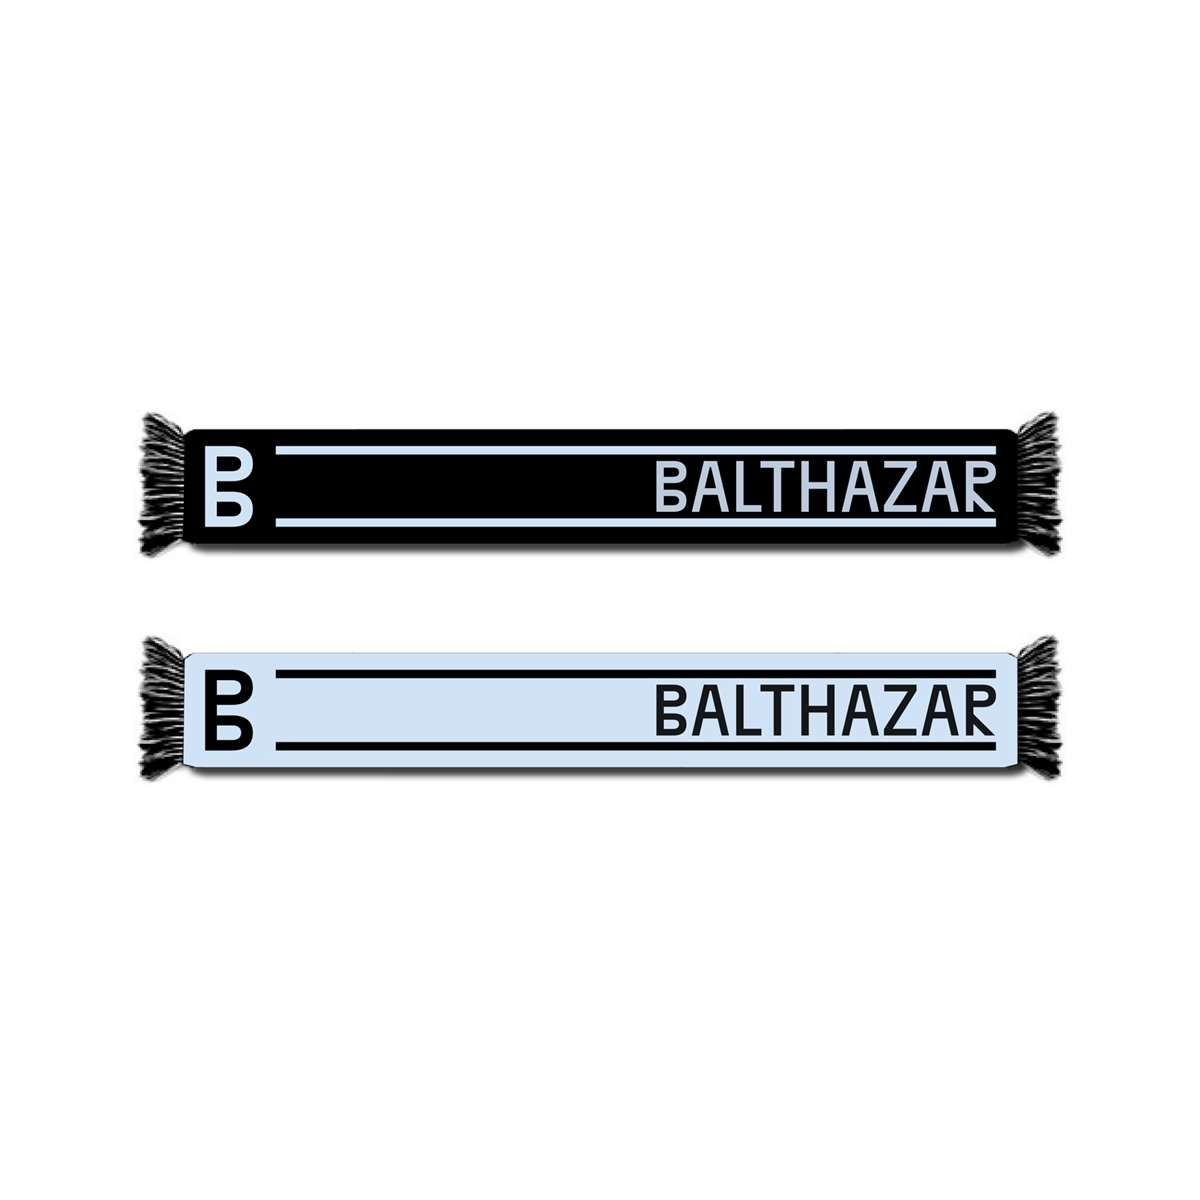 Scarf - Balthazar Merch